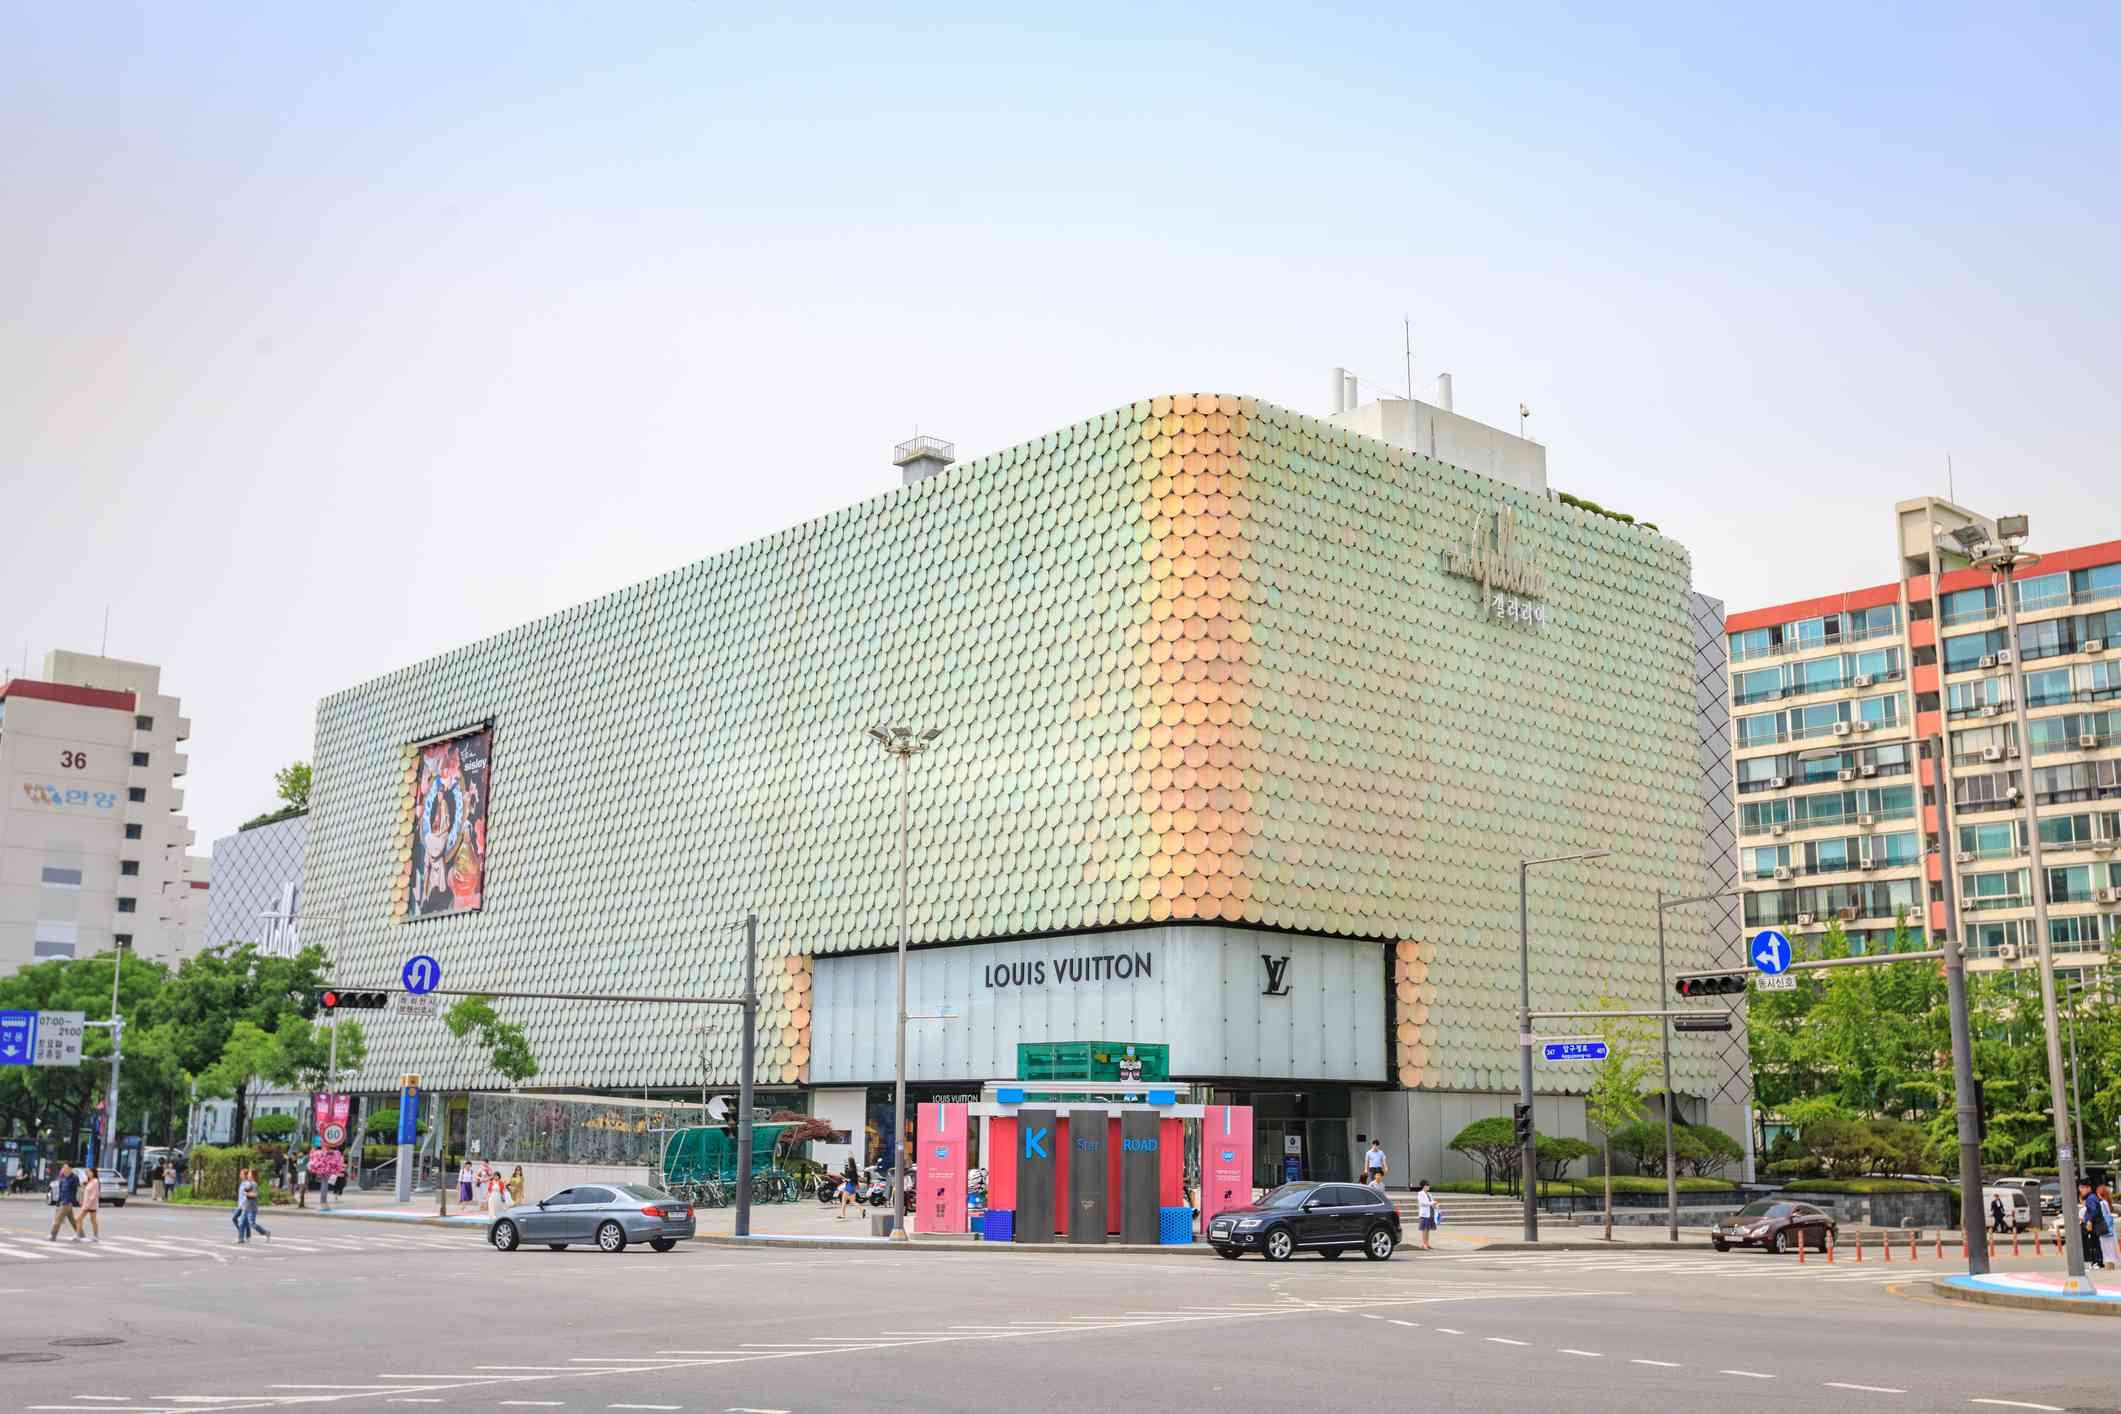 Jun 19, 2017 Galleria Department Store known as the most popular luxury-brand fashion mall in Seoul, Korea